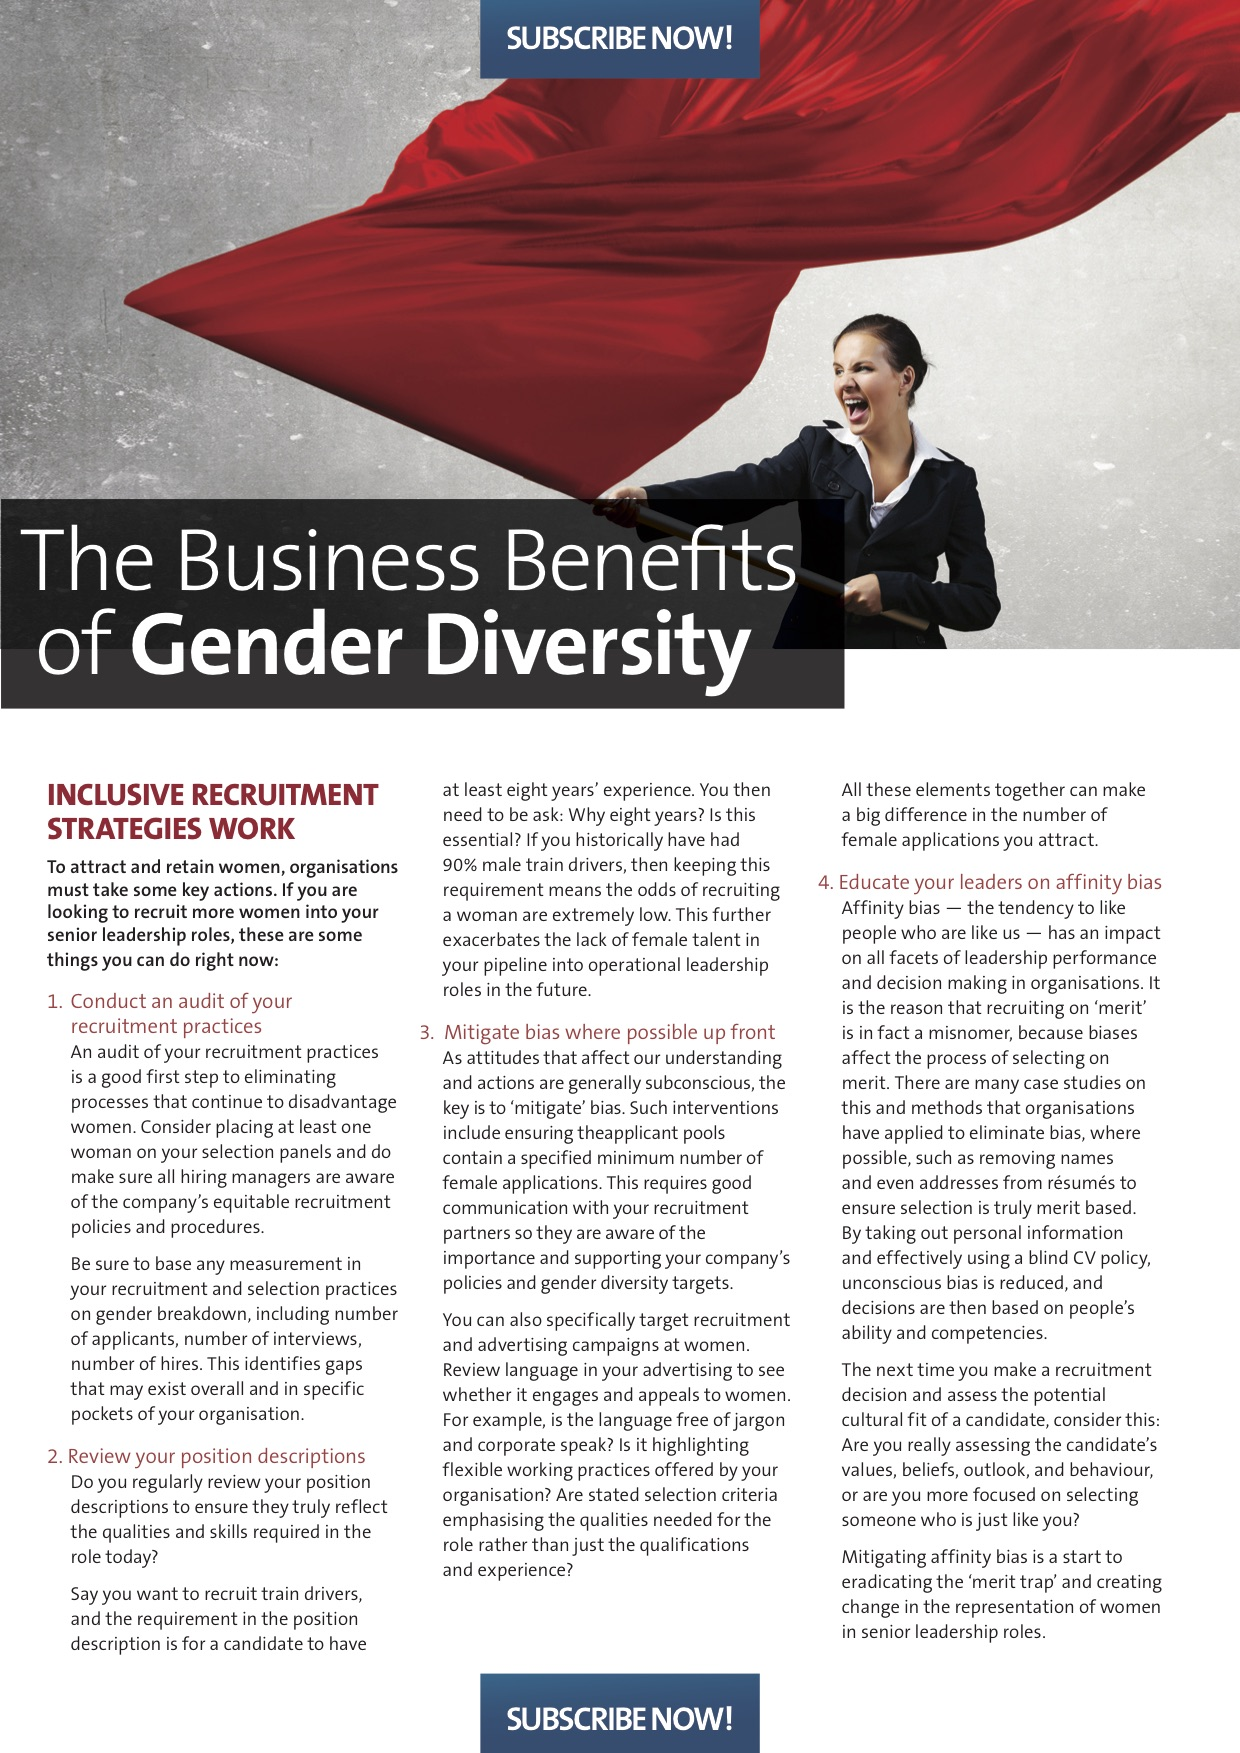 Belinda Brosnan Article - The Business Benefits of Gender Diversity - Drake International page 1.jpg